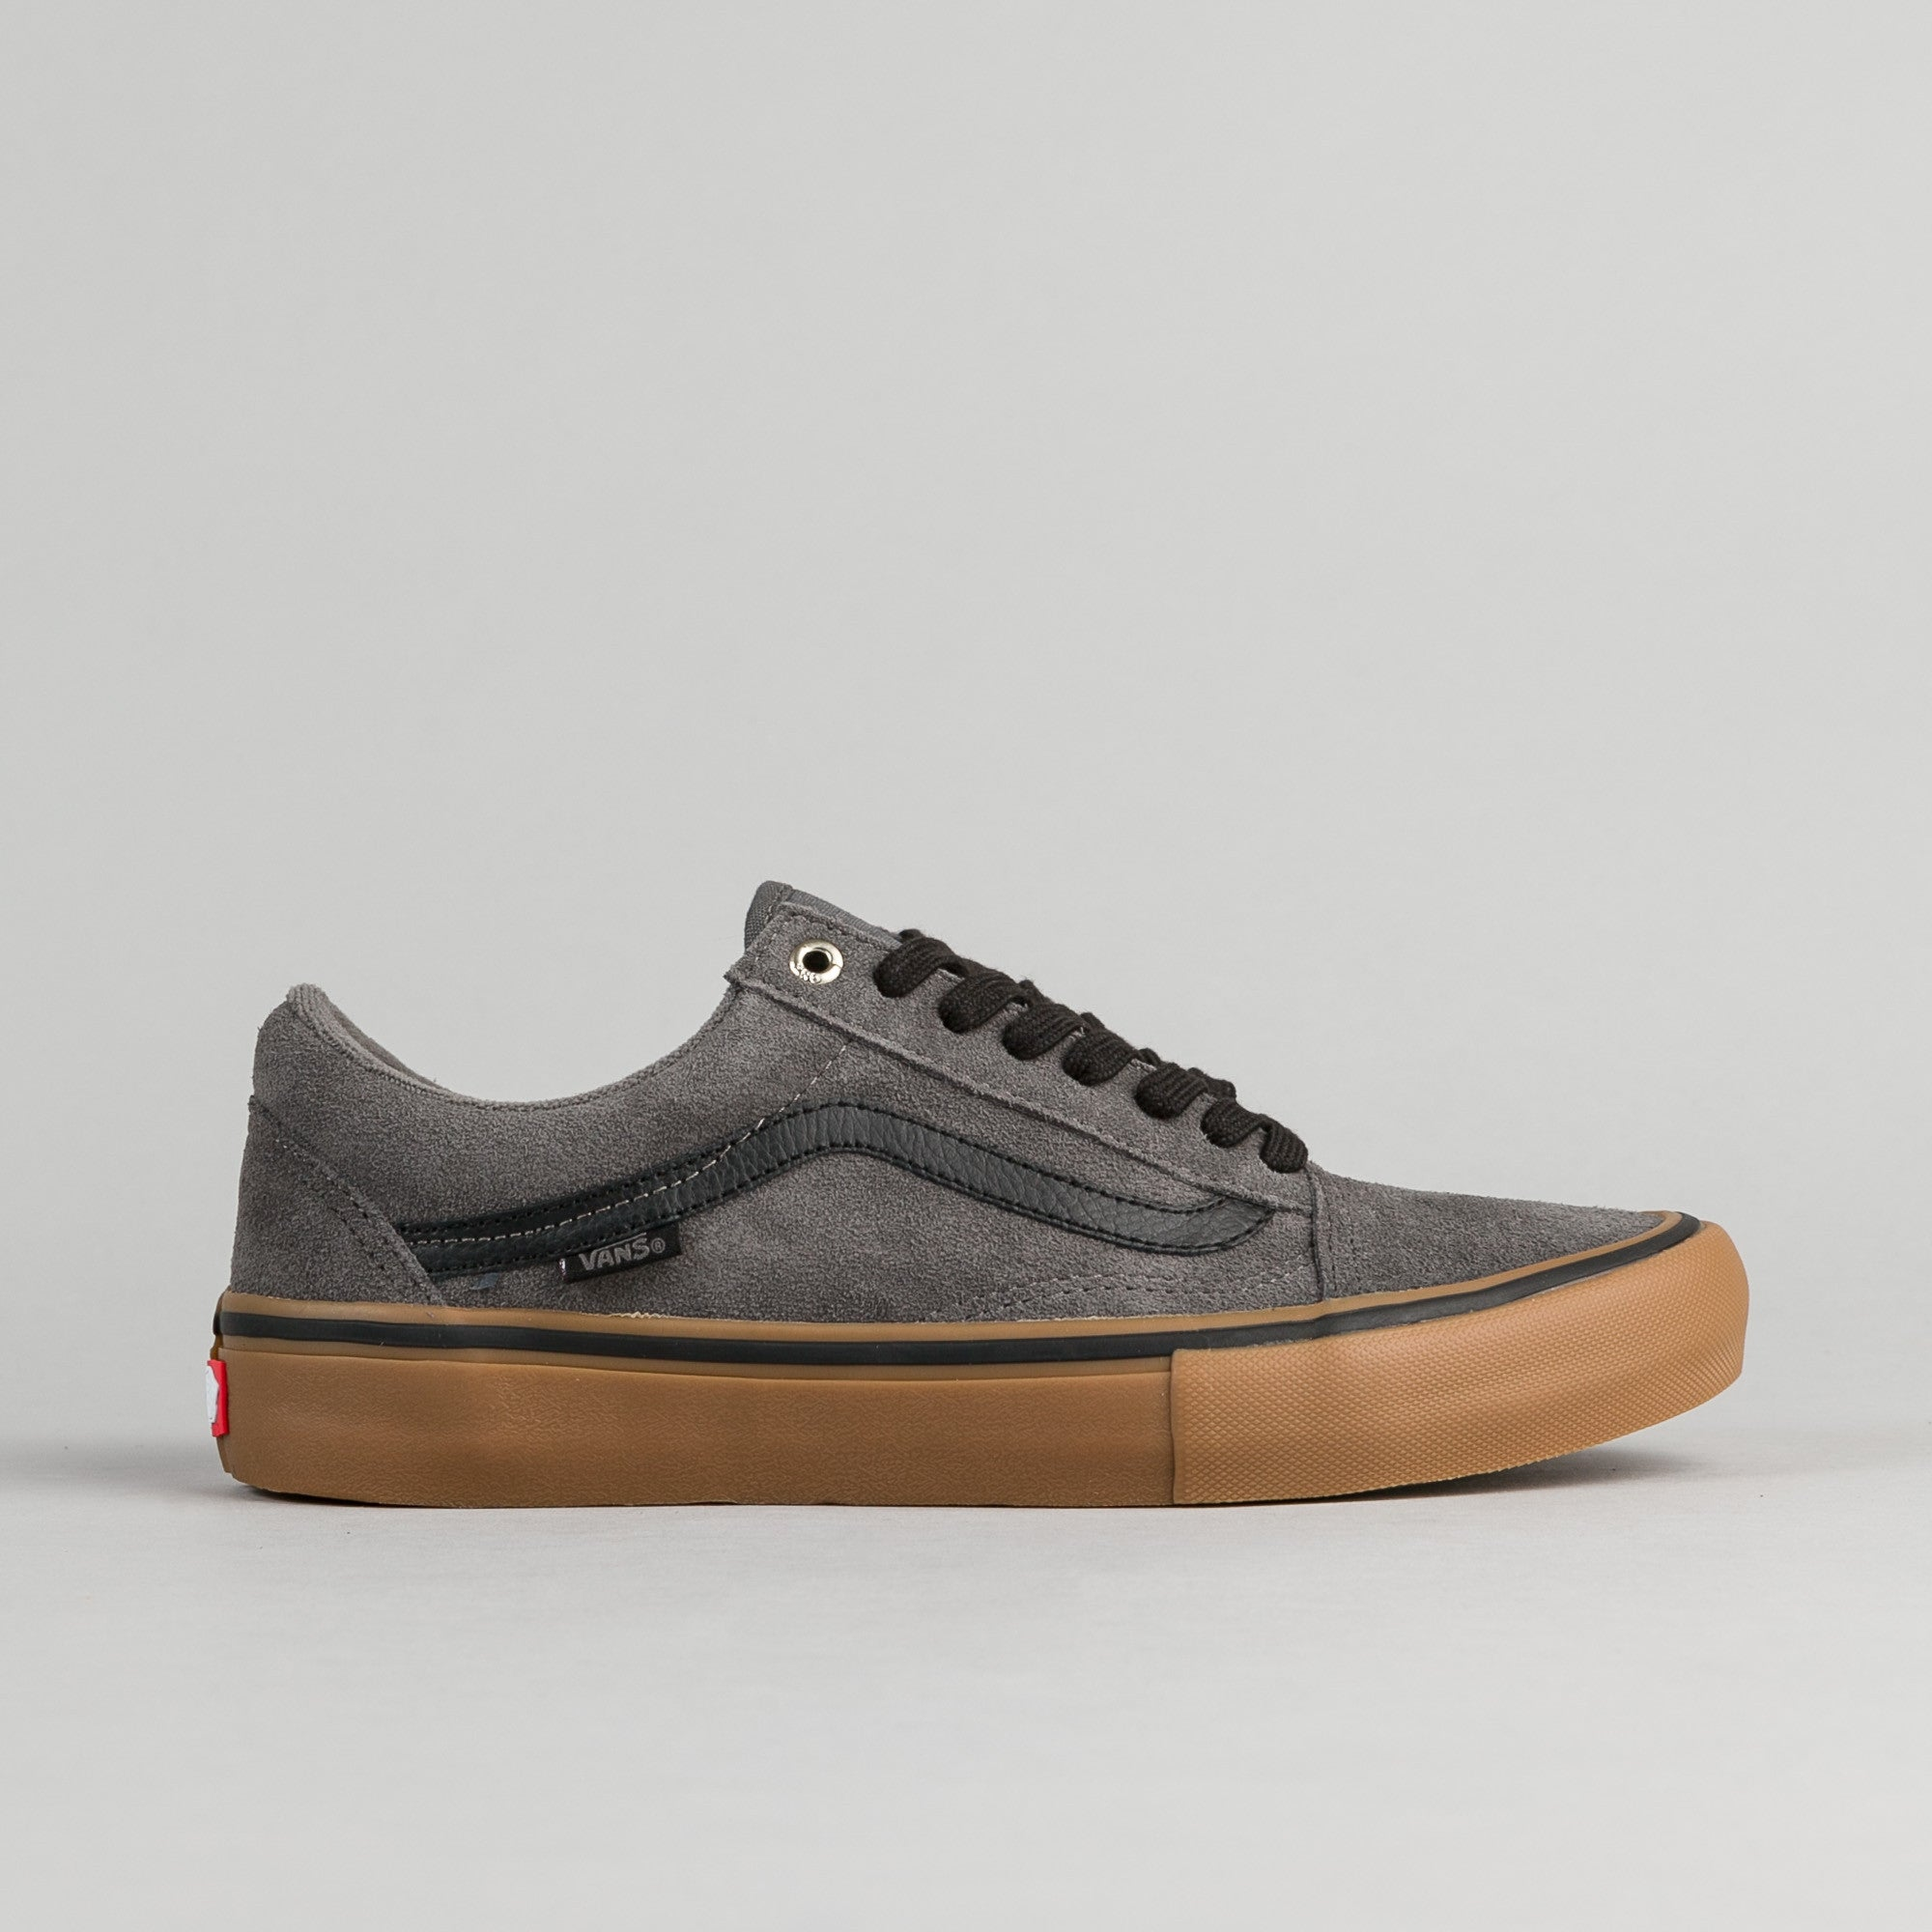 72dd471f2e Vans Old Skool Pro Shoes - Grey   Black   Gum